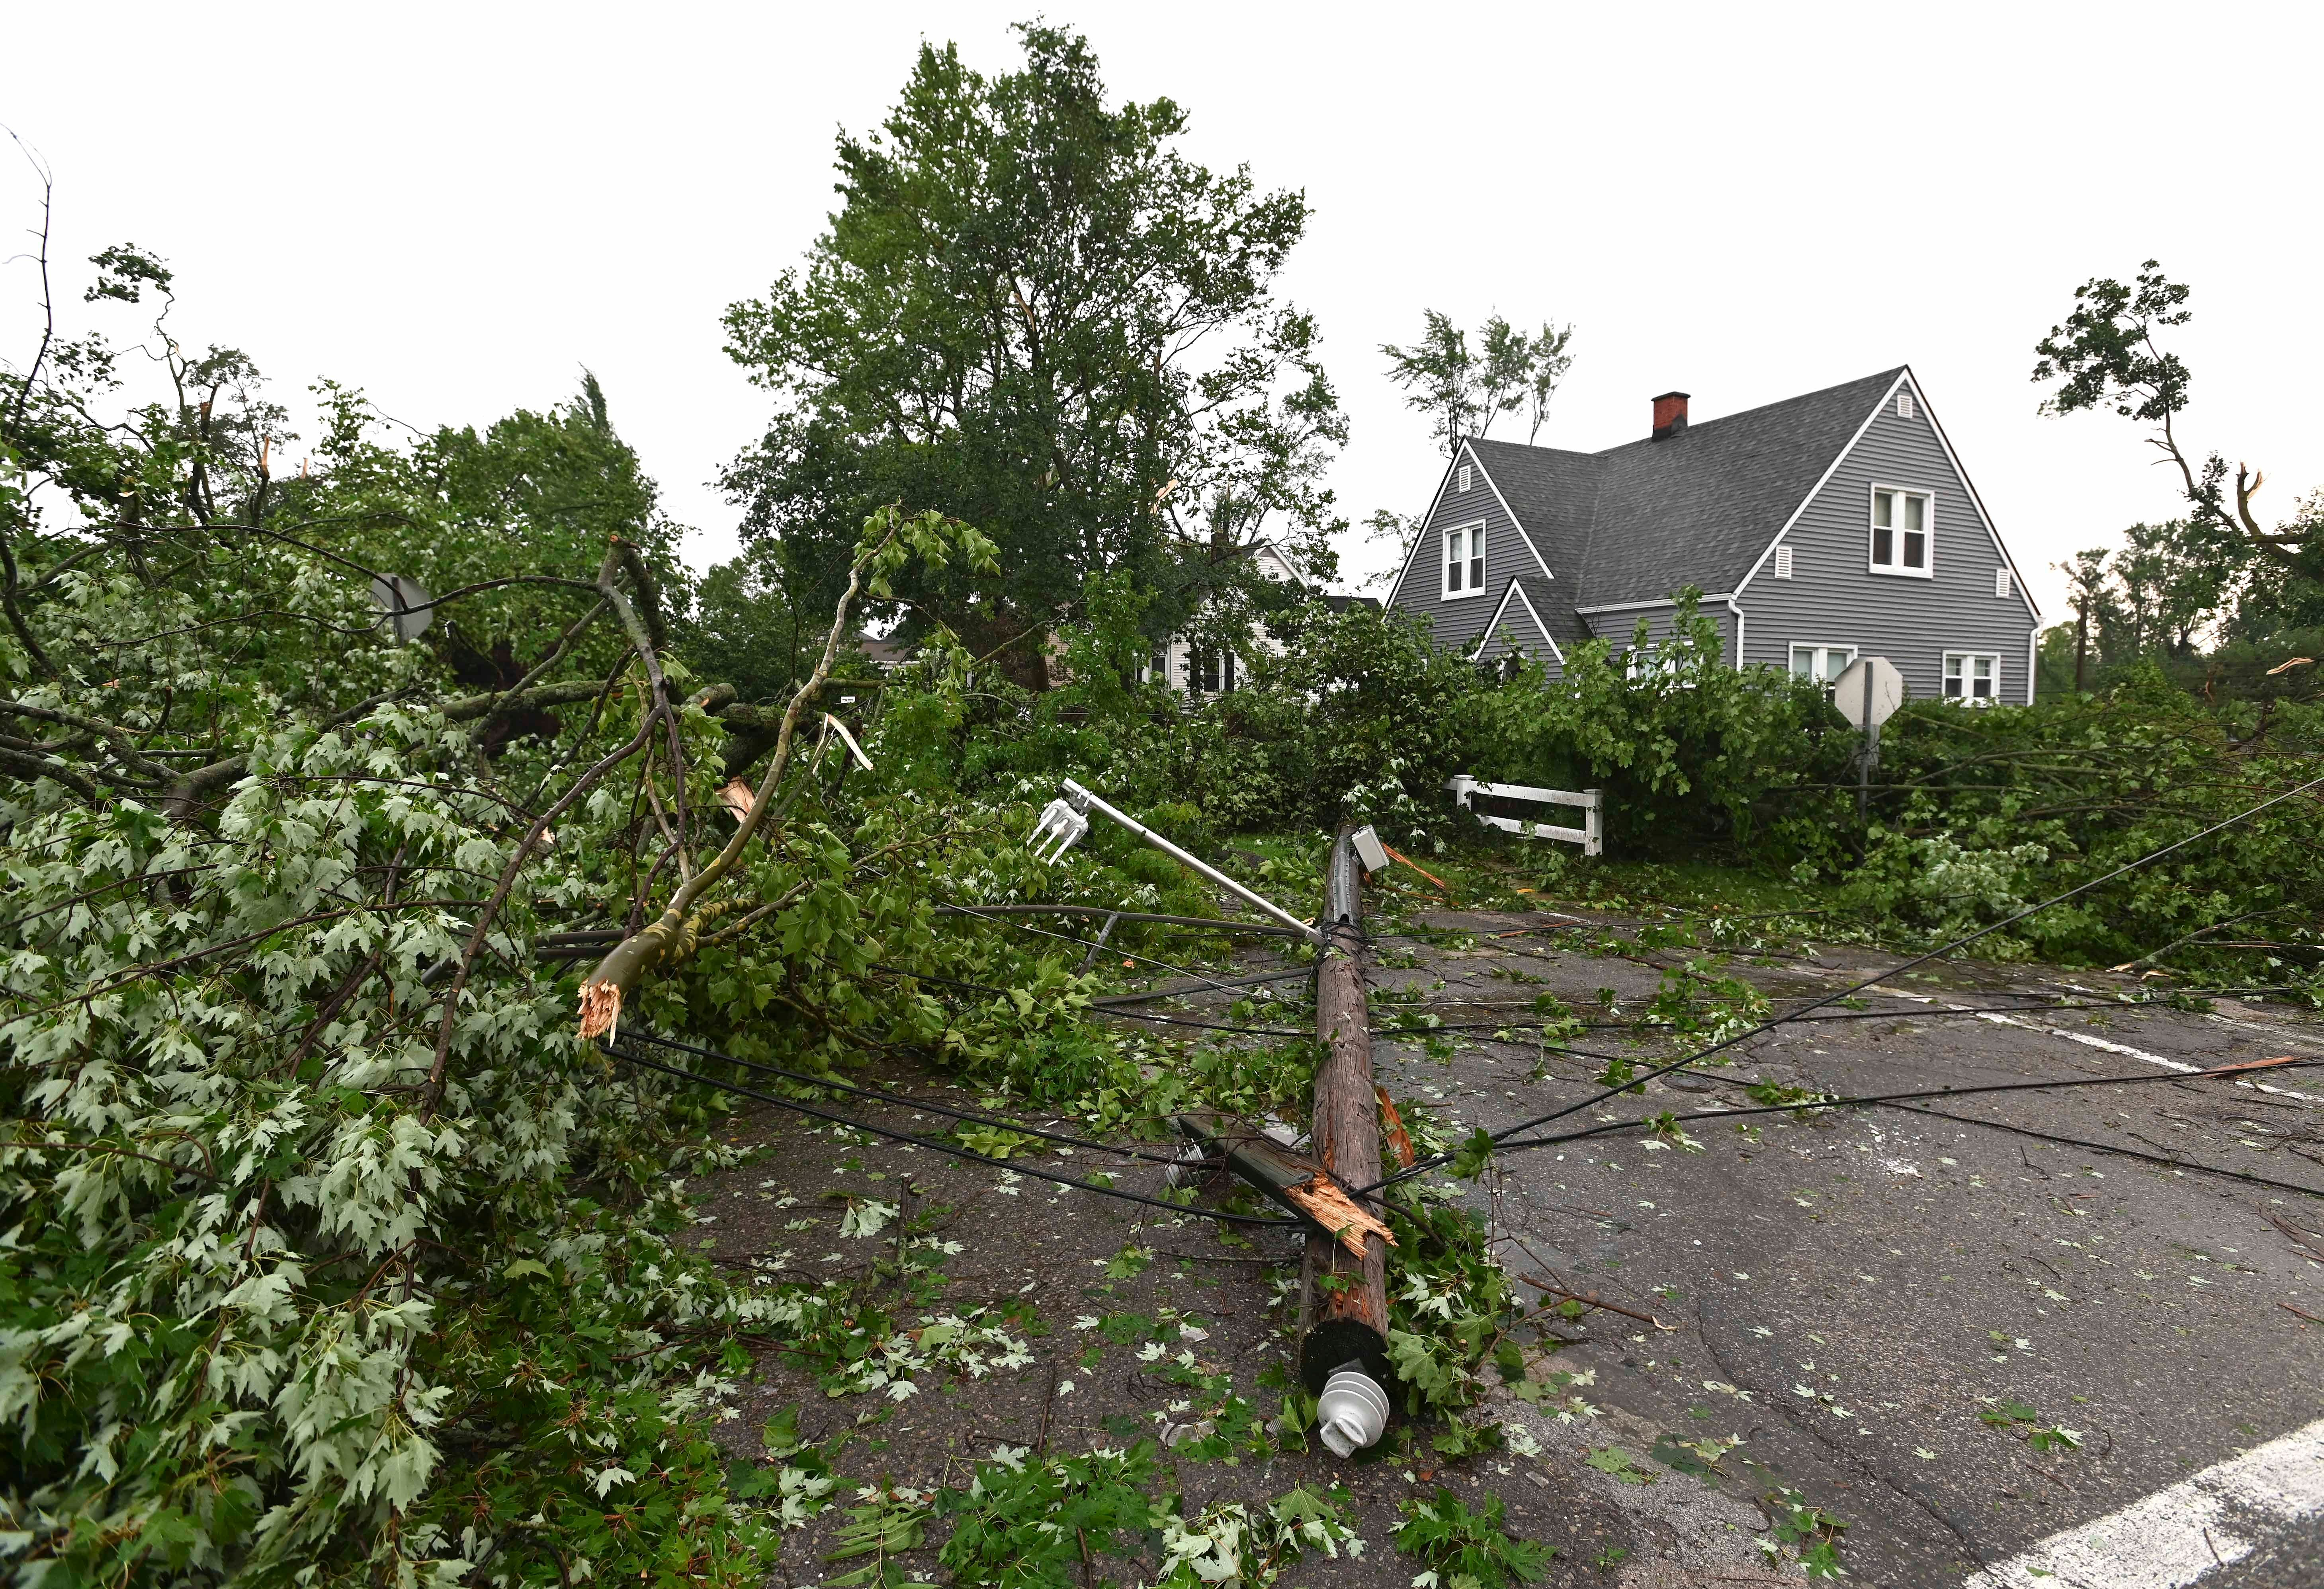 Thousands in Armada, Oakland Co. without power following severe storms, possible tornado